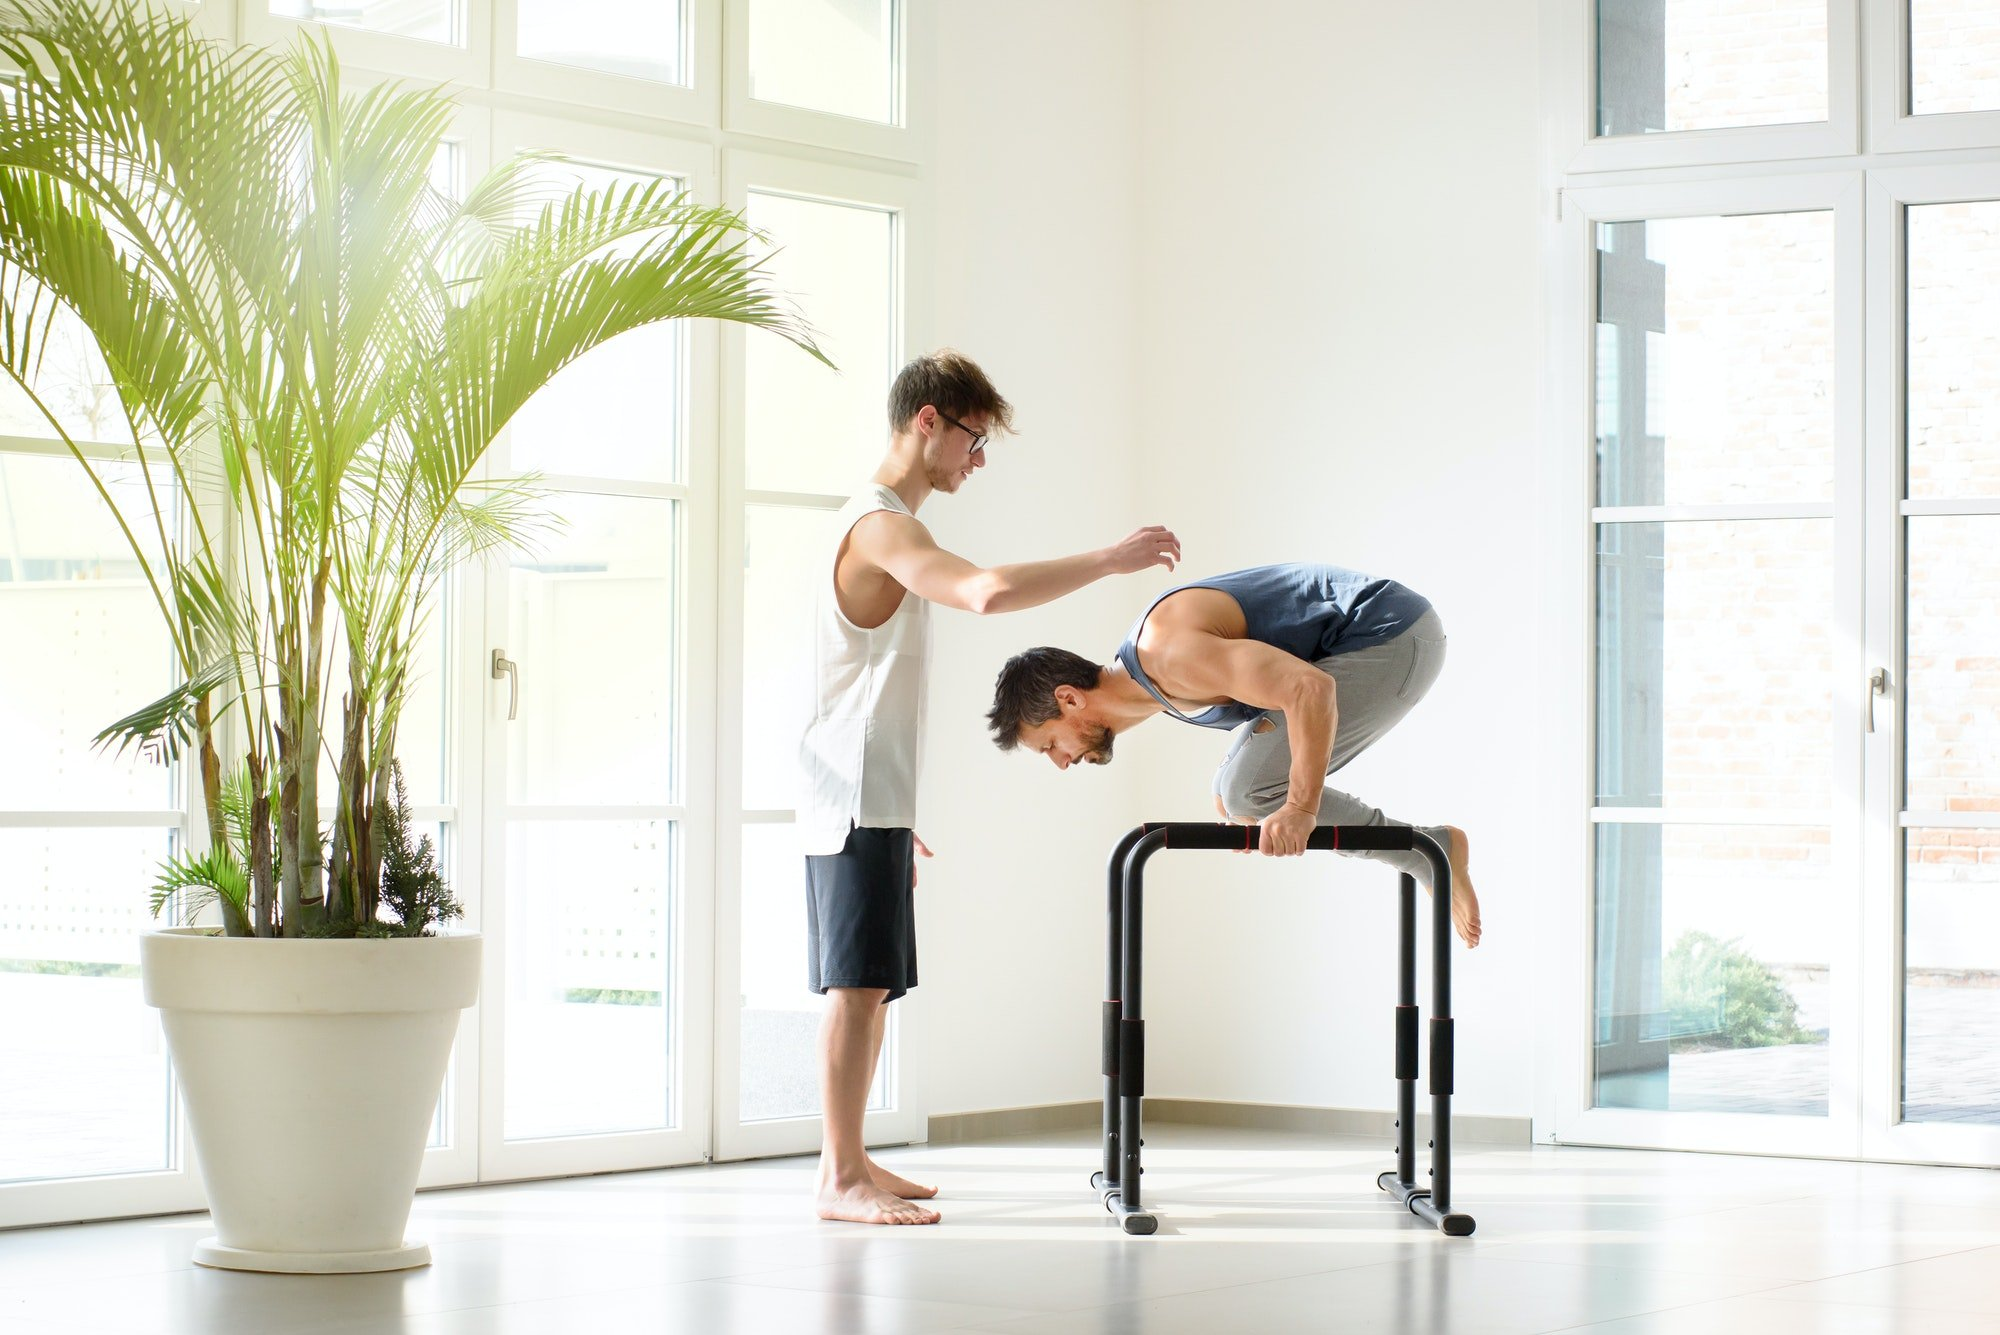 Two men working out doing calisthenics exercises